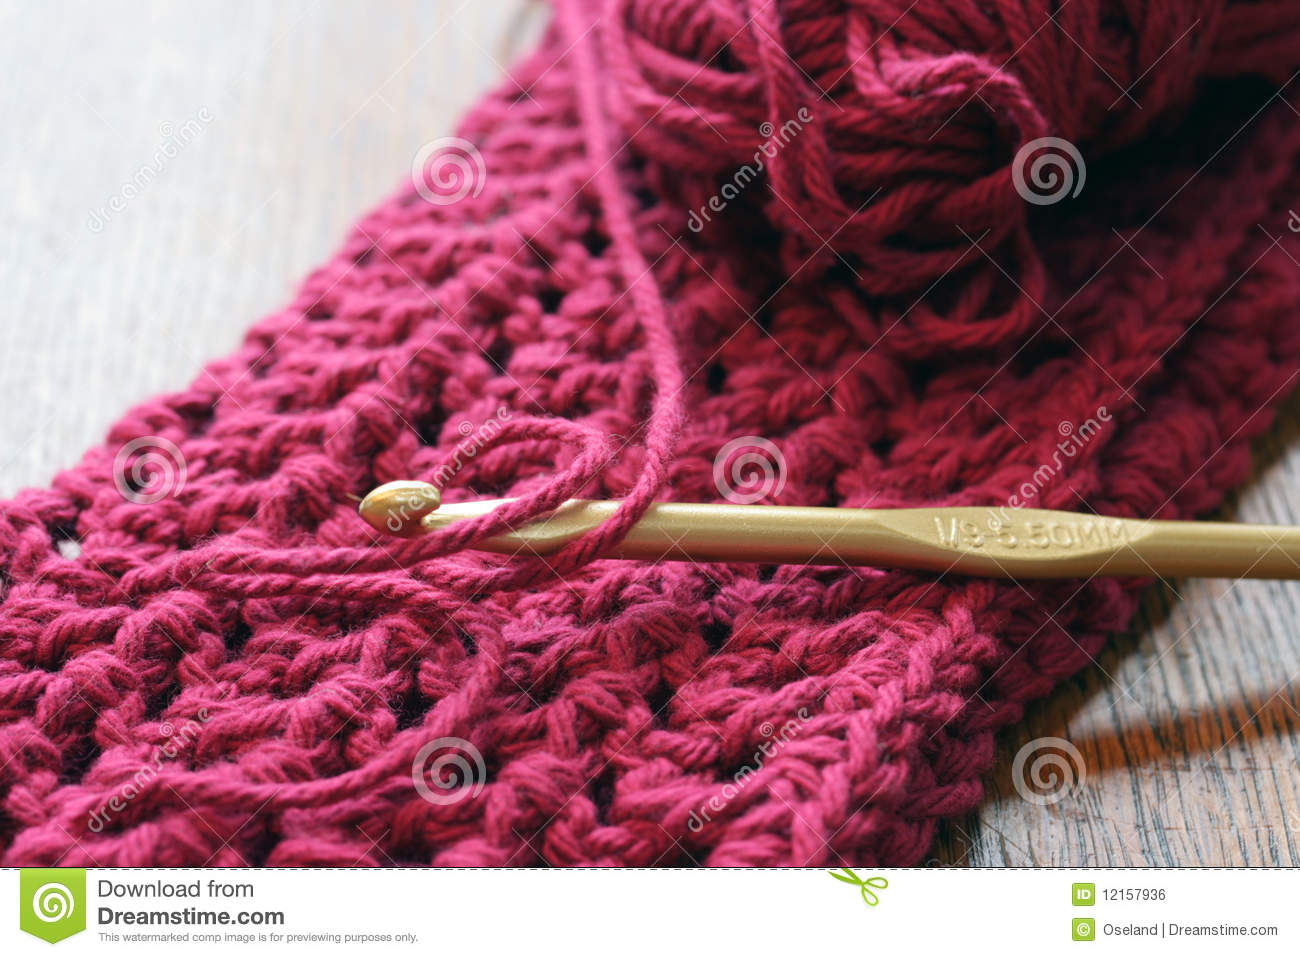 Crocheting Yarn : crochet hook and yarn that has been crocheted into a double ...